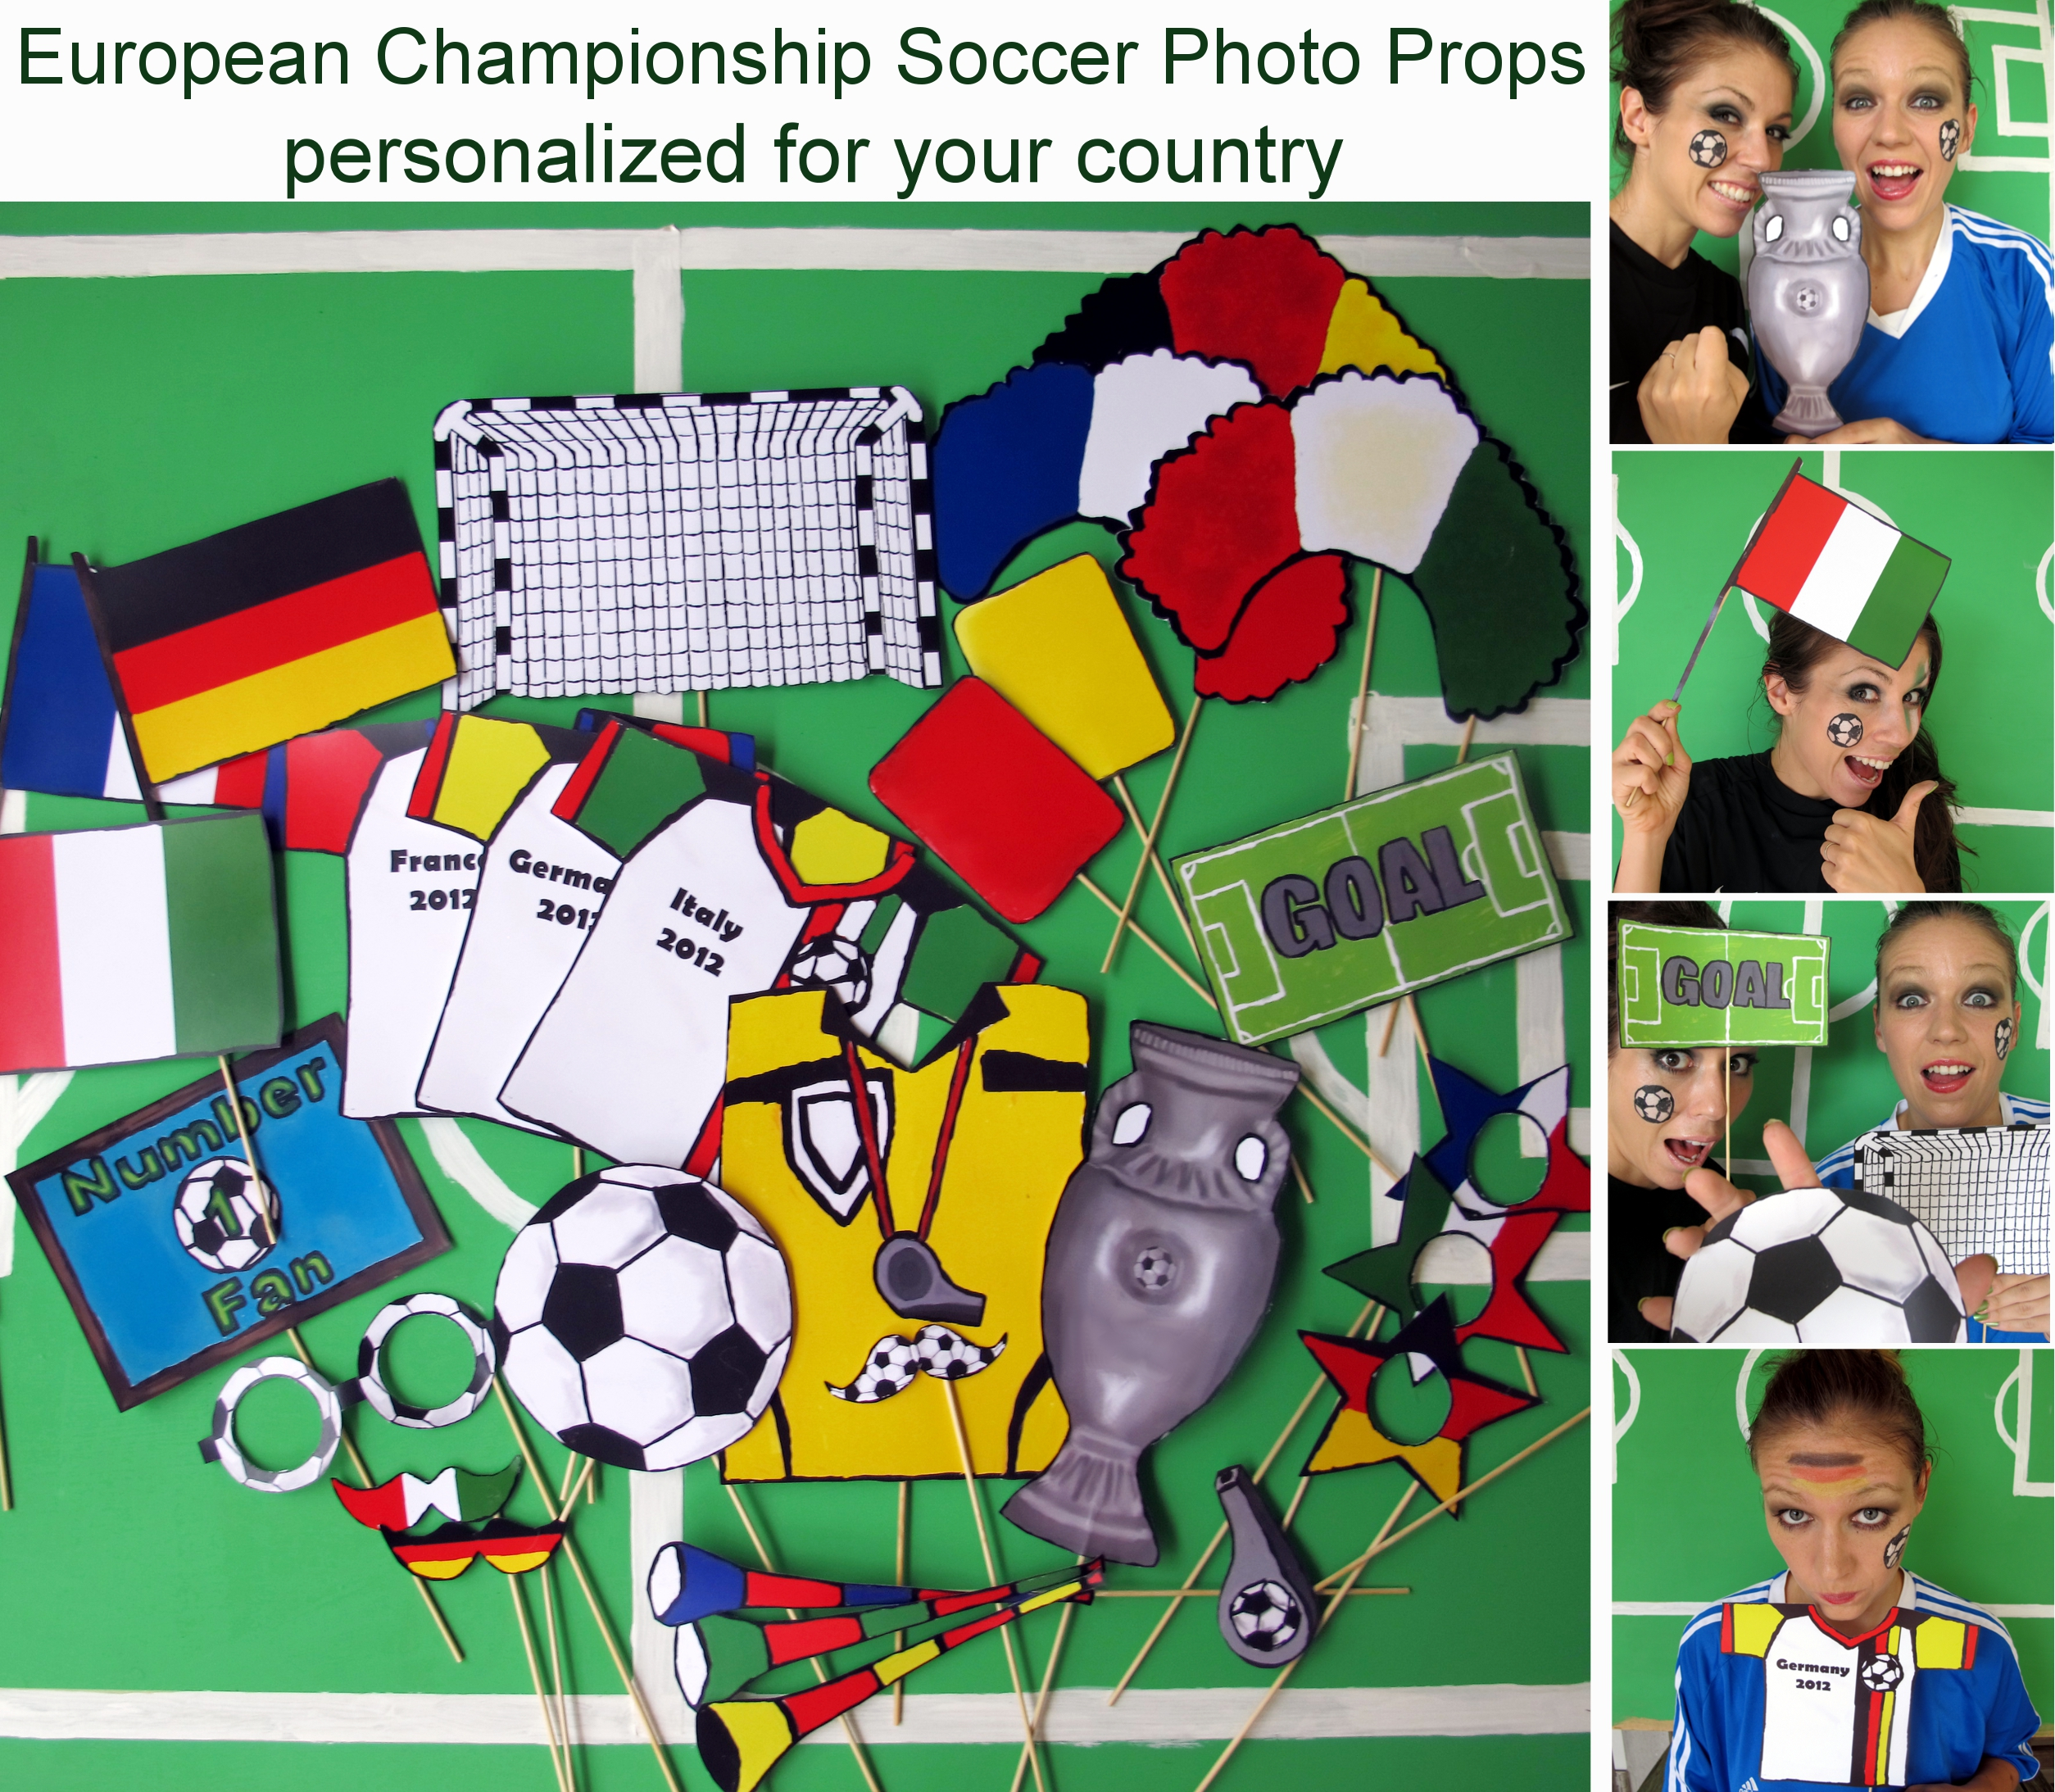 European Championship Photo Booth Props The Ultimate Soccer Fan